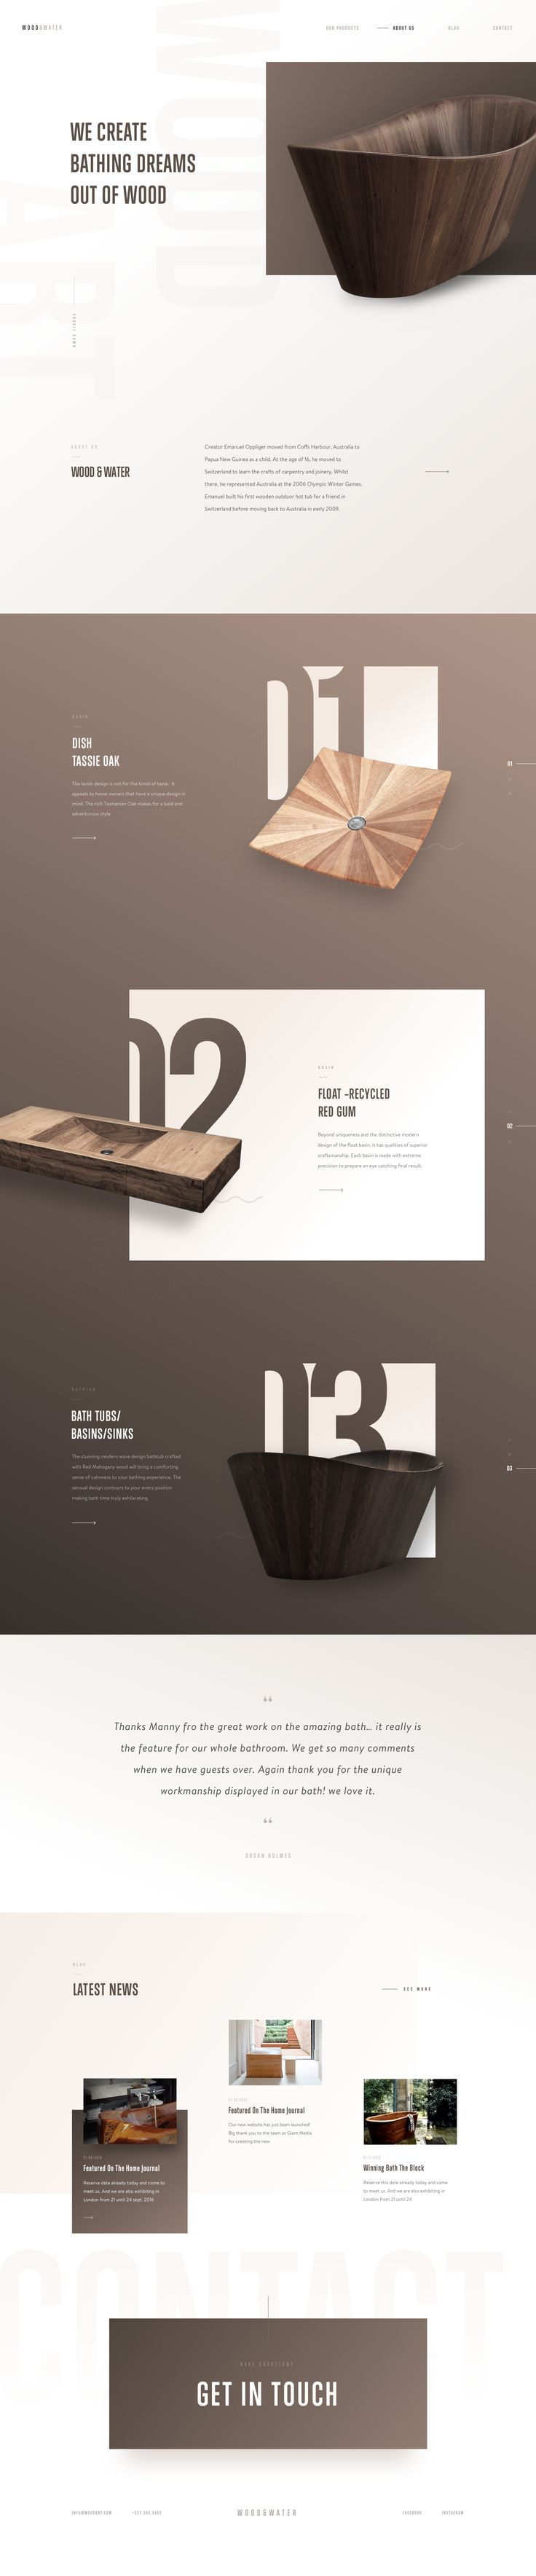 Wood&Water - #Ui design concept for a homepage #website dedicated to sinks and bathtubs, by Martin Strba.